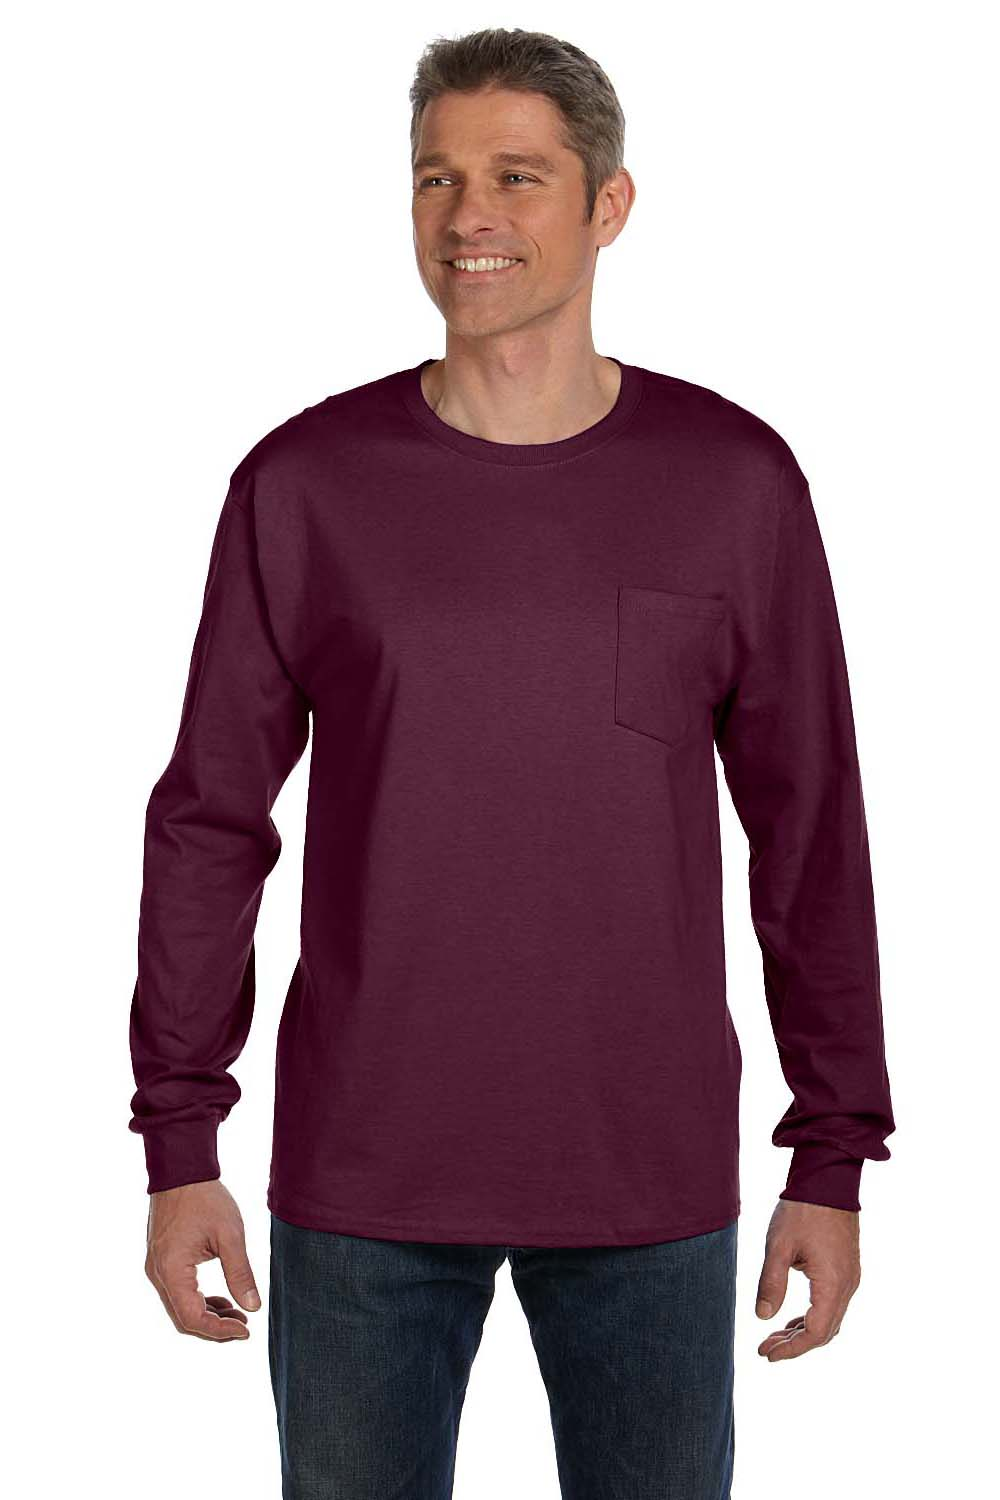 Hanes 5596 Mens ComfortSoft Long Sleeve Crewneck T-Shirt w/ Pocket Maroon Front